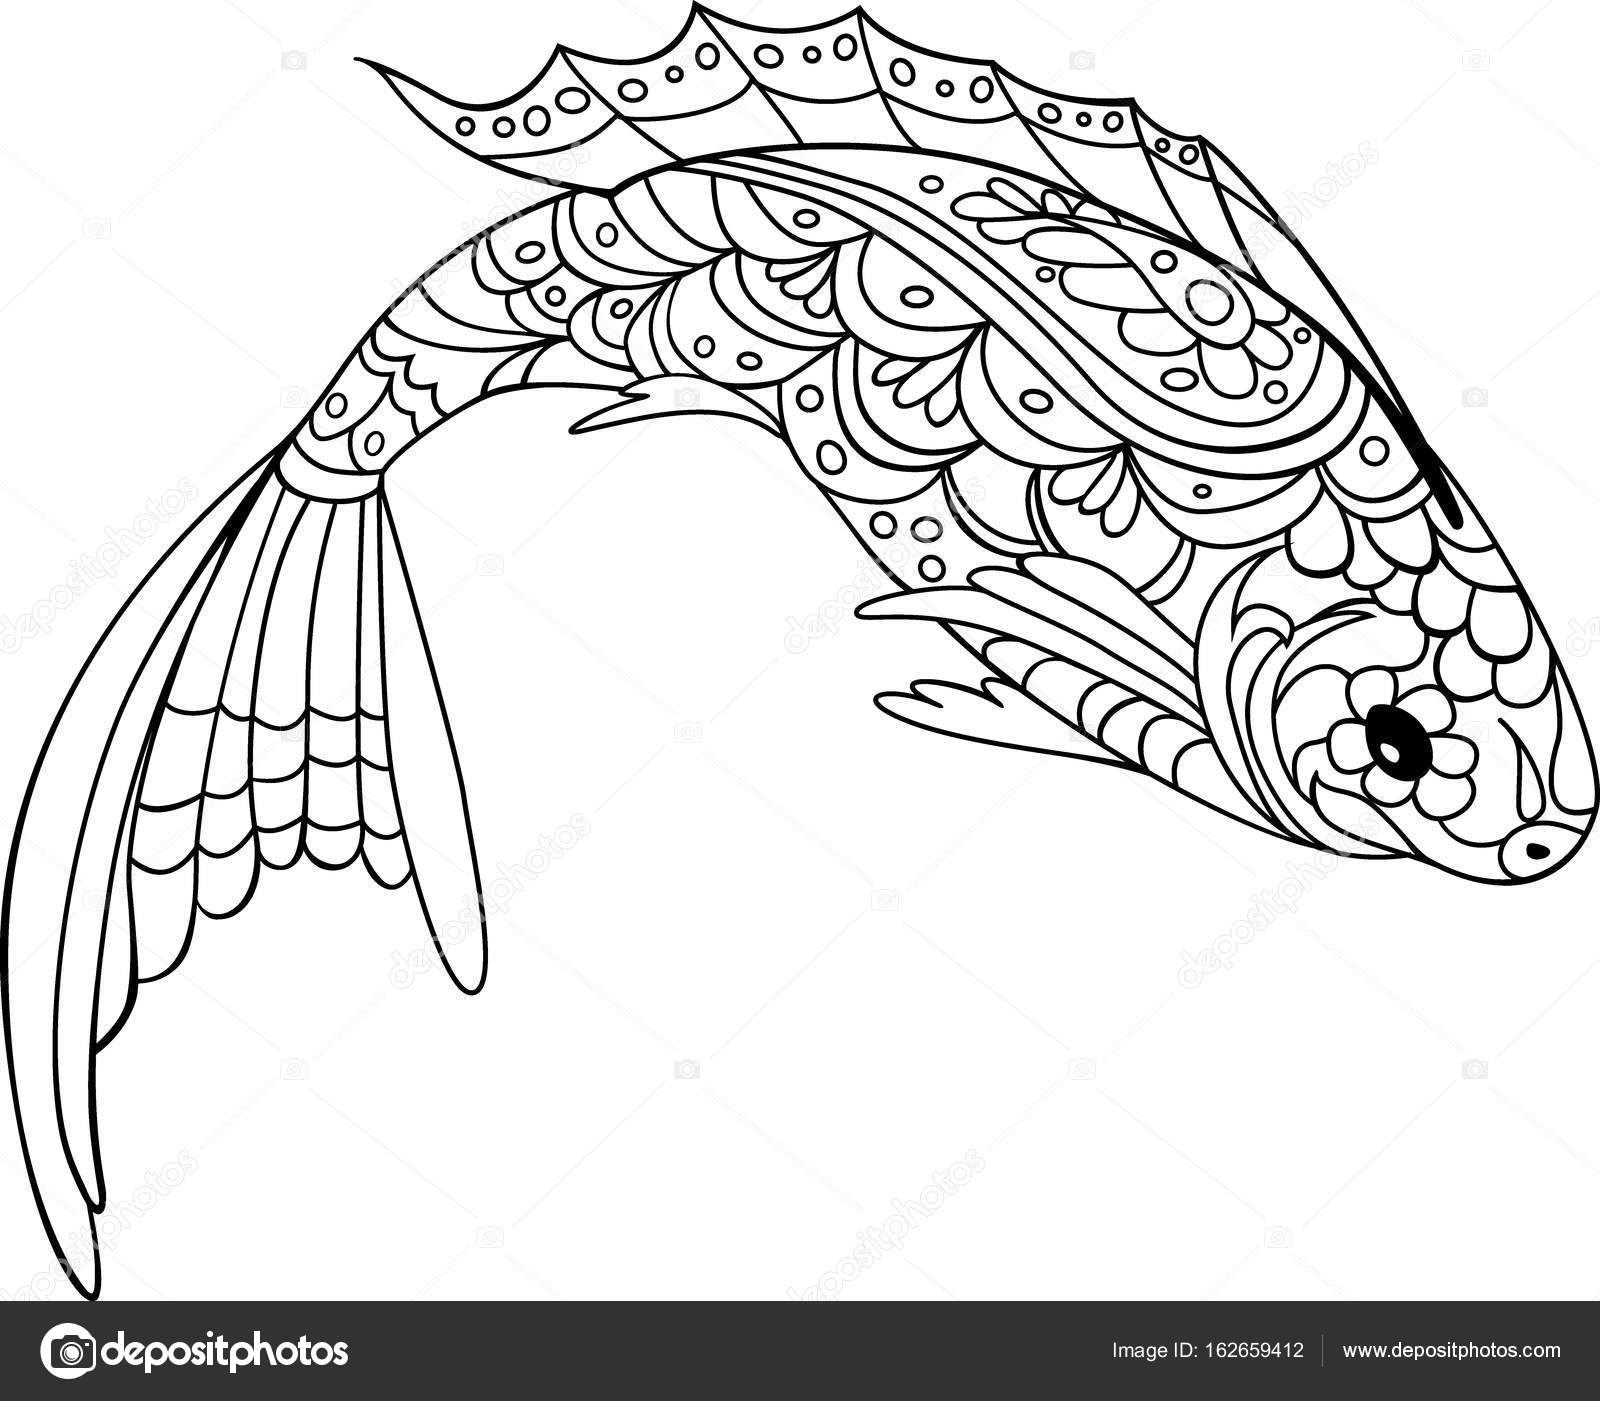 fish zentangle style. Coloring book for adult and kids, antistress ...